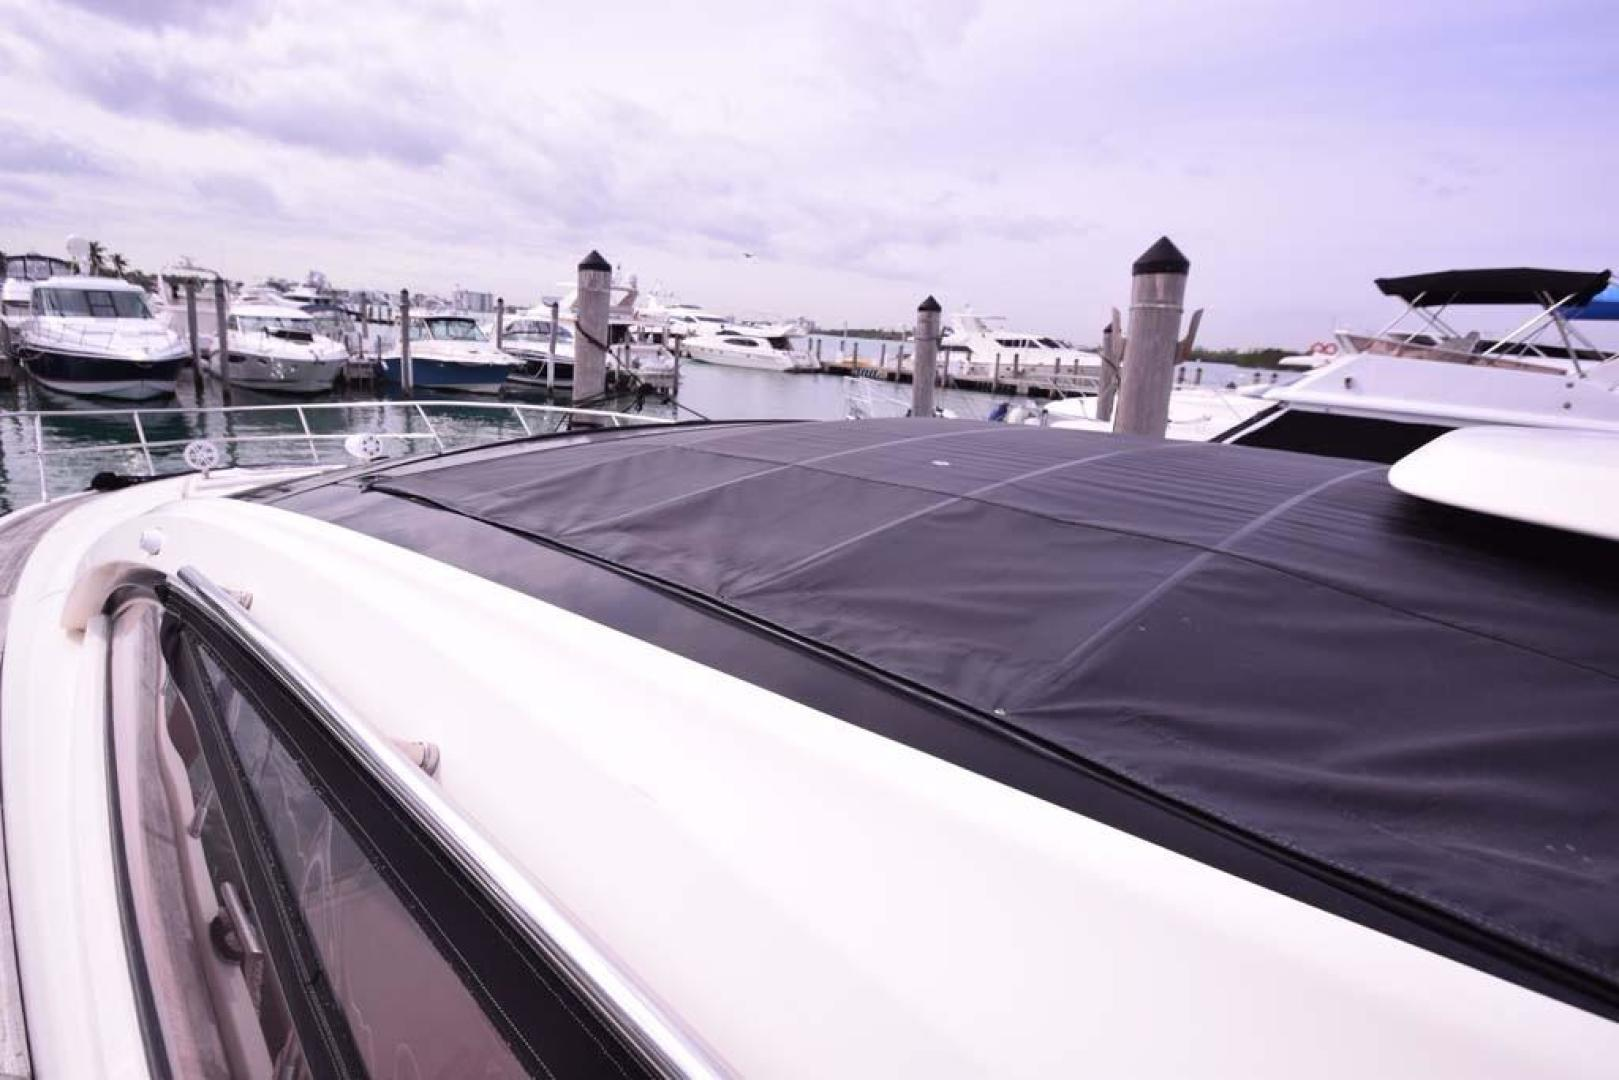 Azimut-48 ATLANTIS 2013-Spectrum Miami-Florida-United States-Retractable Roof Overview from Top-369640 | Thumbnail